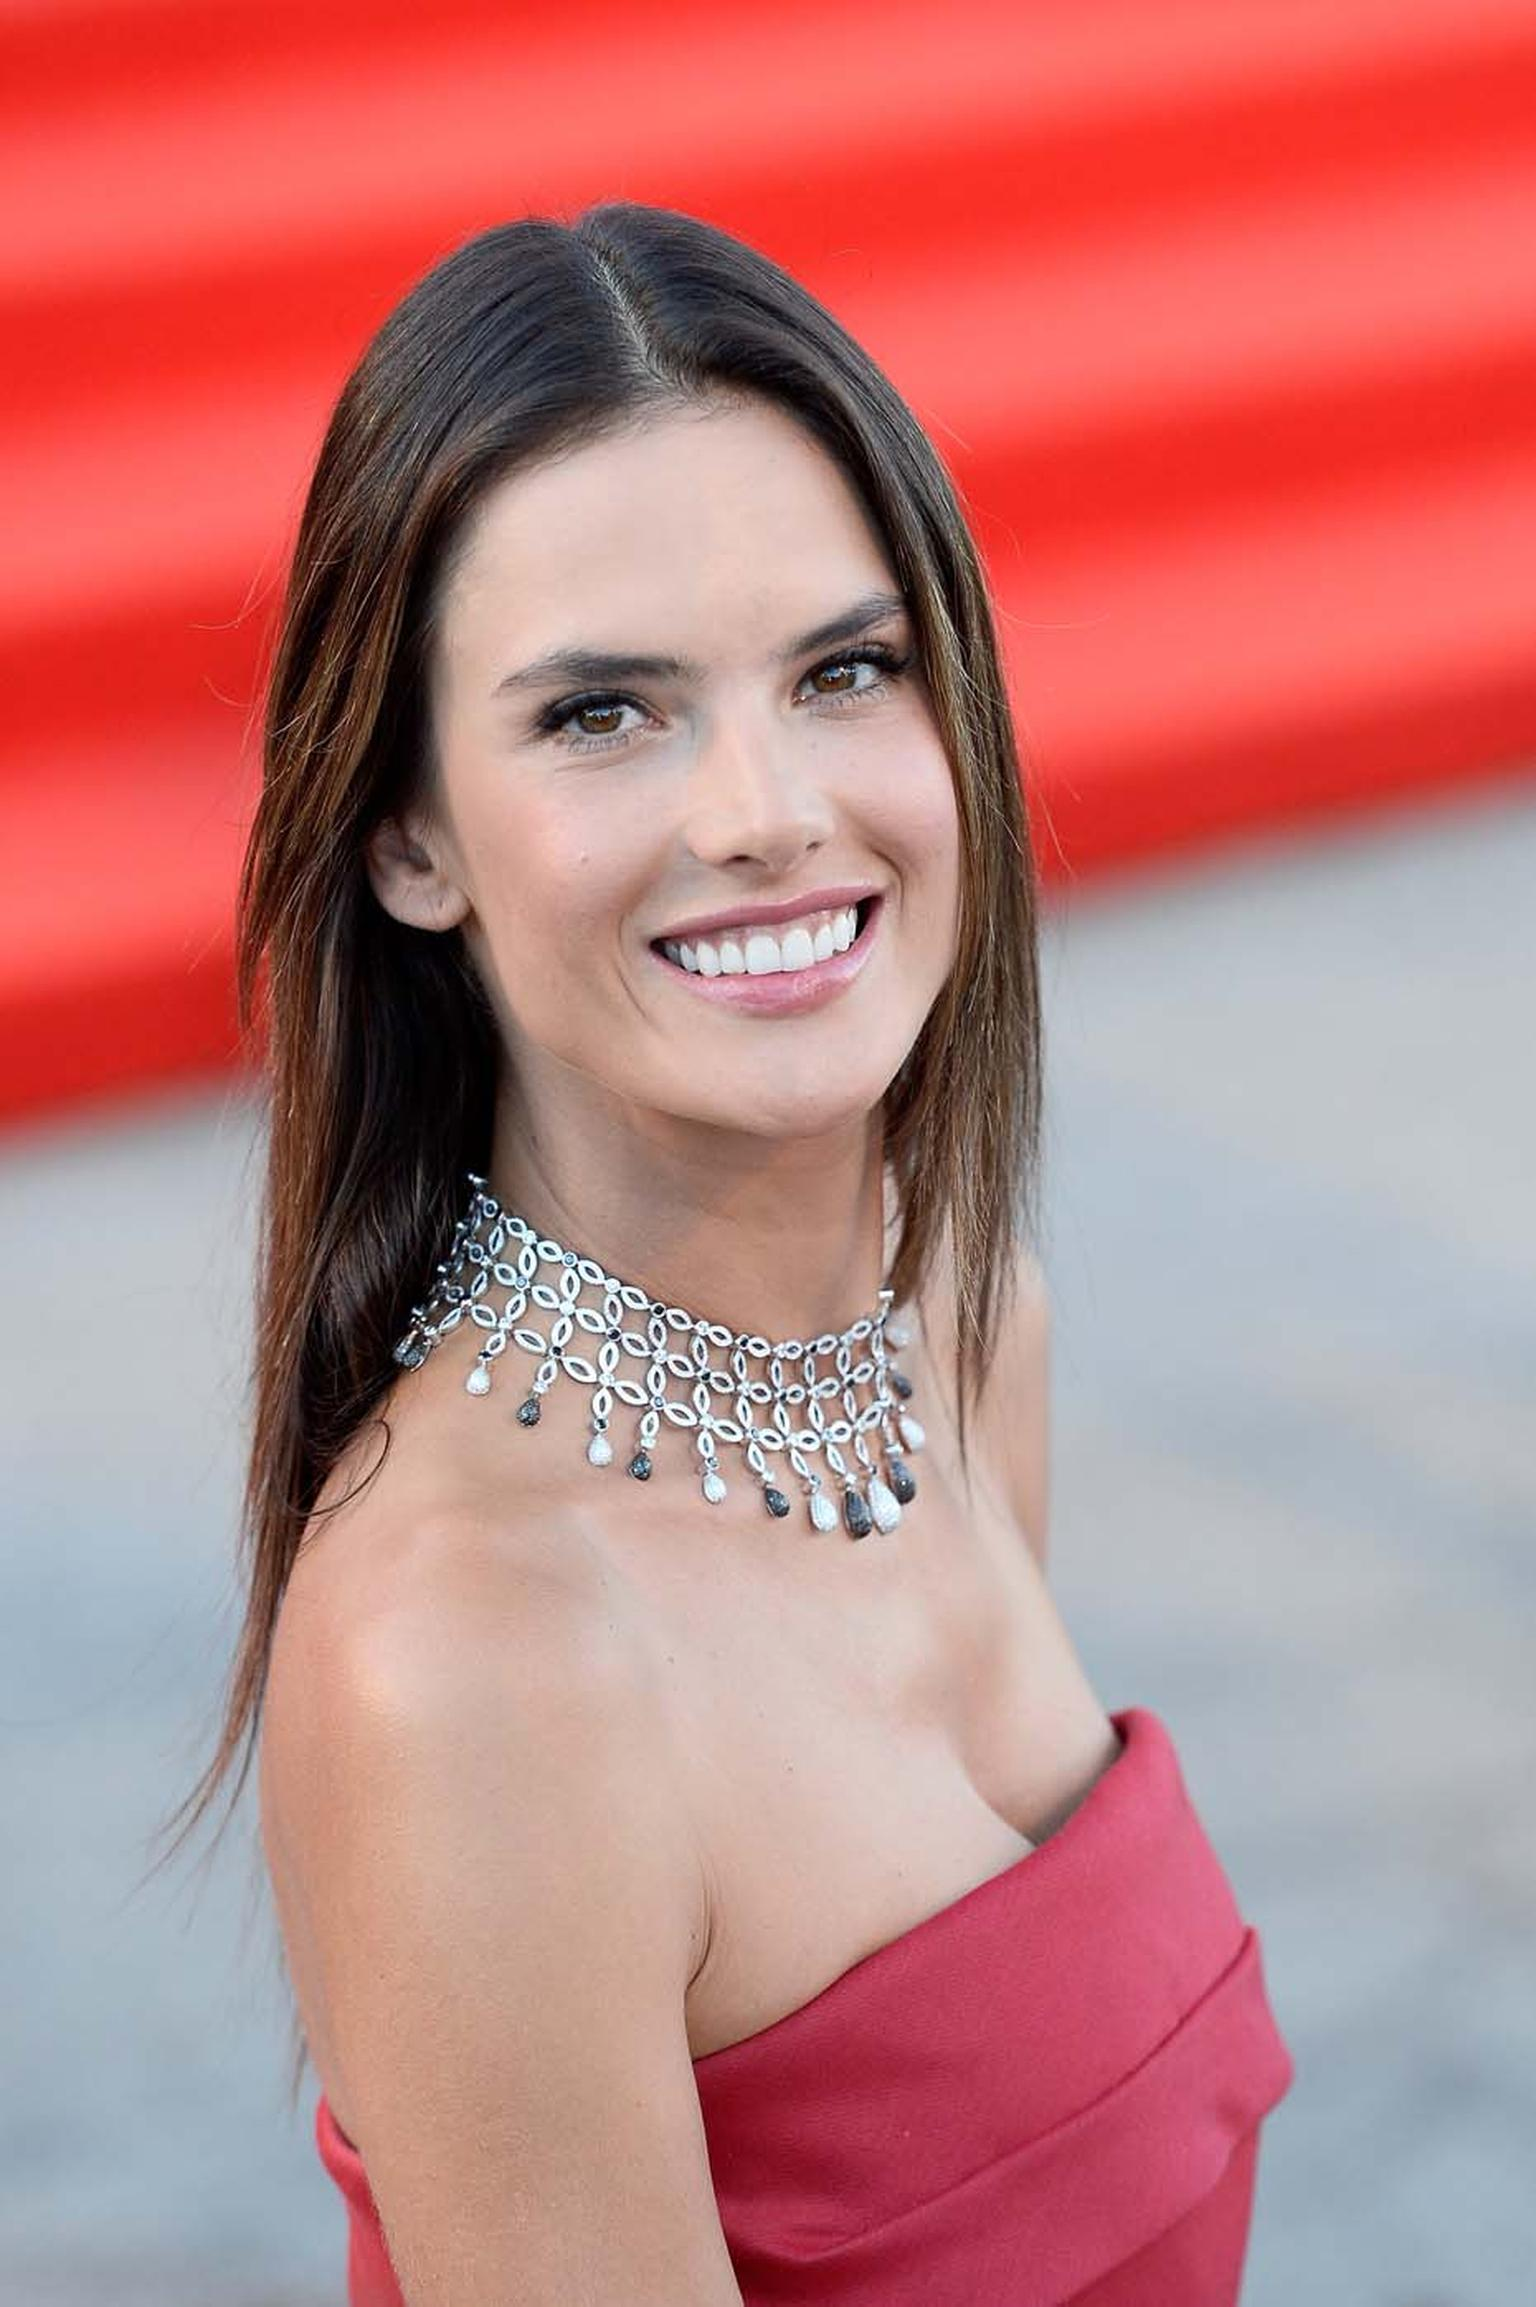 Brazilian supermodel Alessandra Ambrosio wore a white gold Chopard necklace set with 20ct of diamonds and 12ct of black diamonds from the Chopard High Jewellery Collection on day two of the Venice Film Festival.